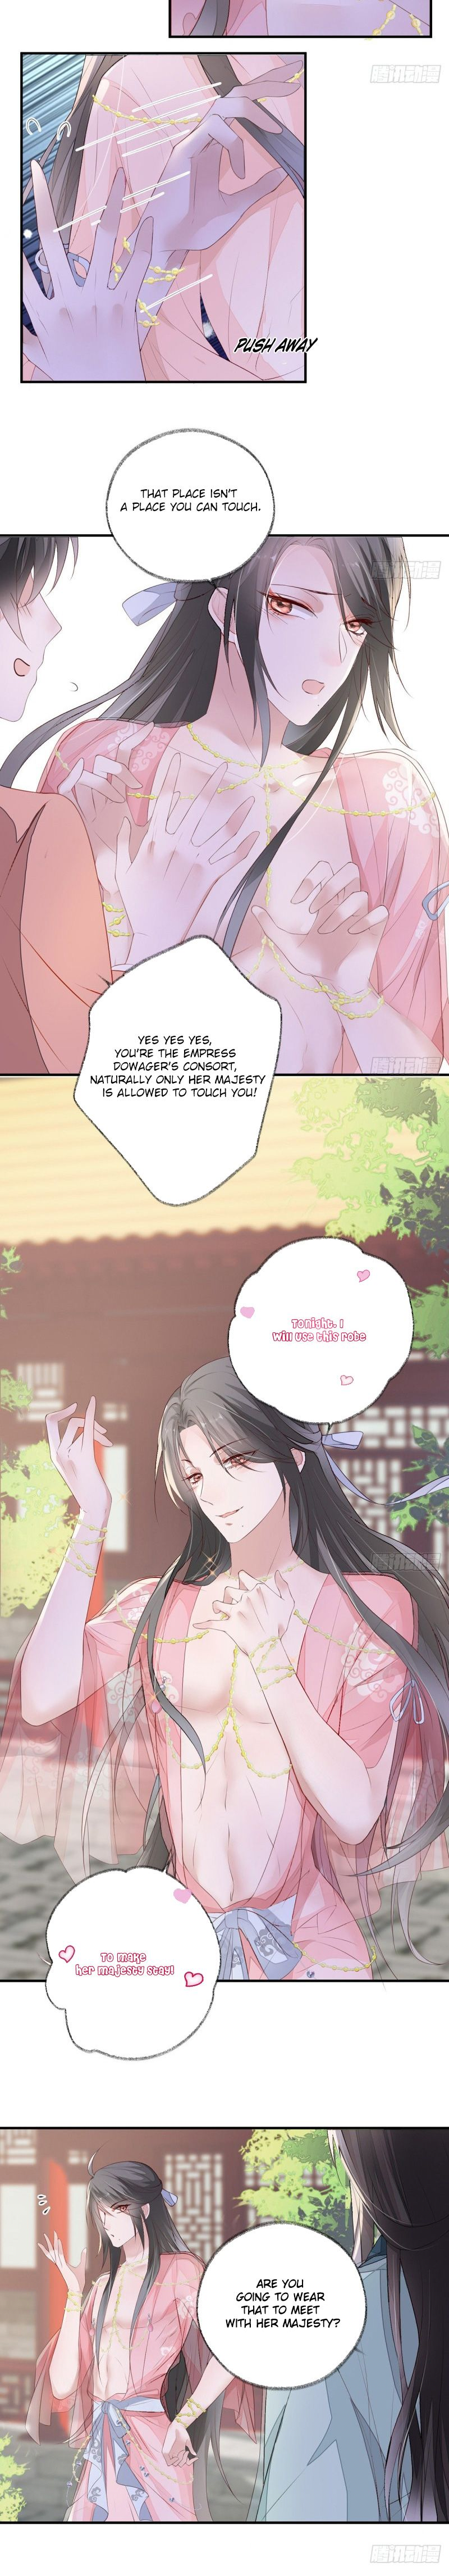 Empress Mother - chapter 9 - #3